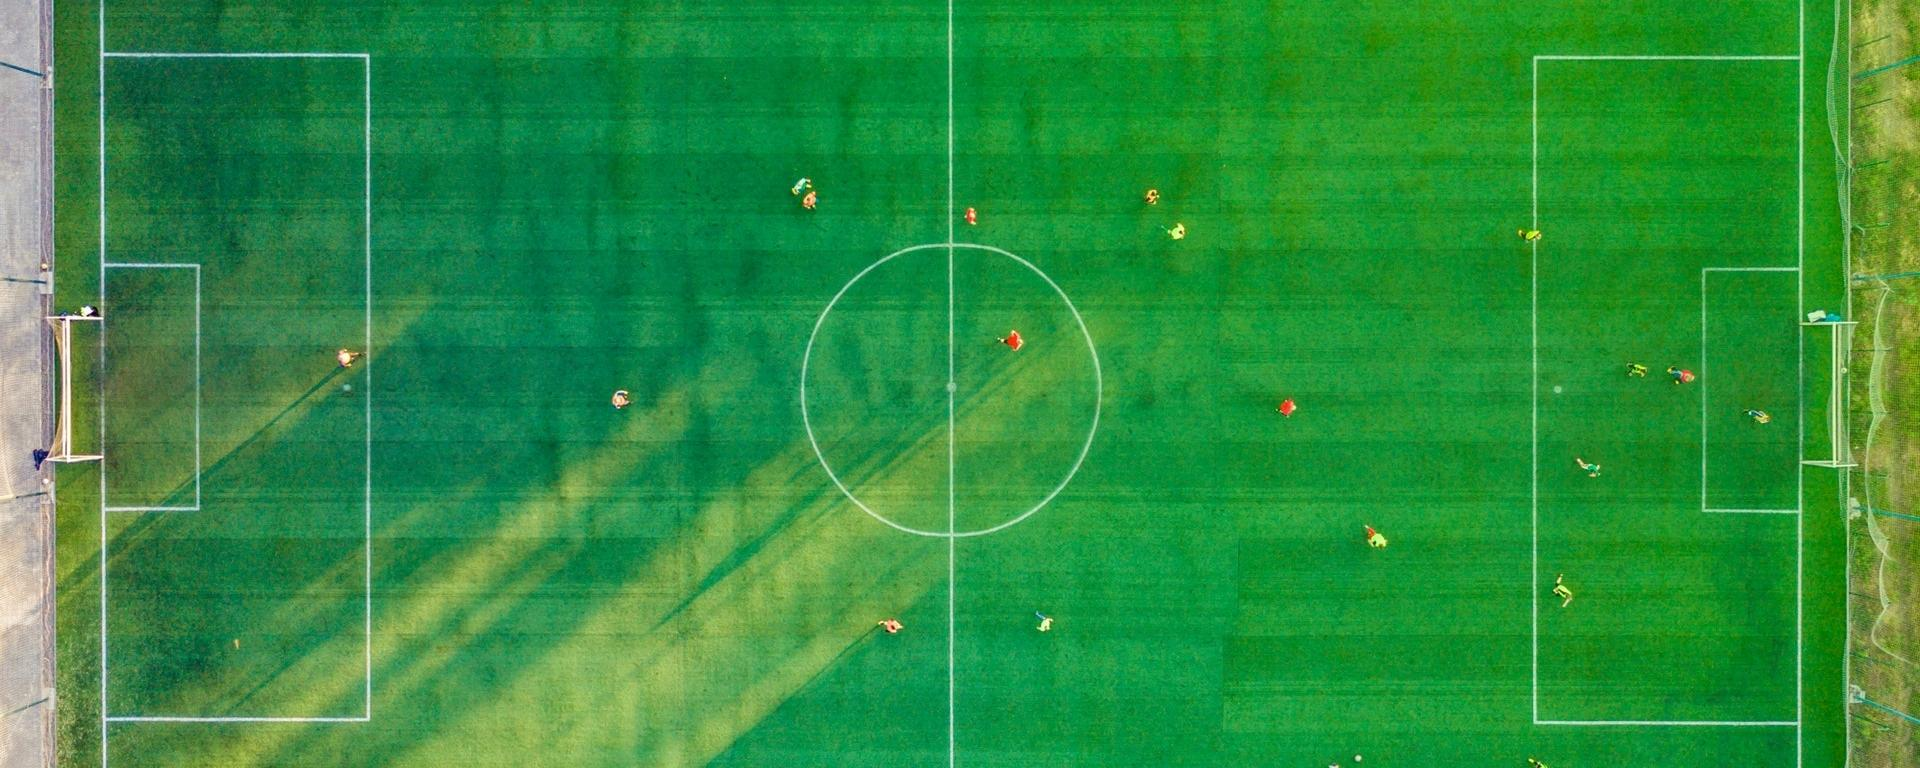 aerial-view-of-soccer-field-1171084.jpg